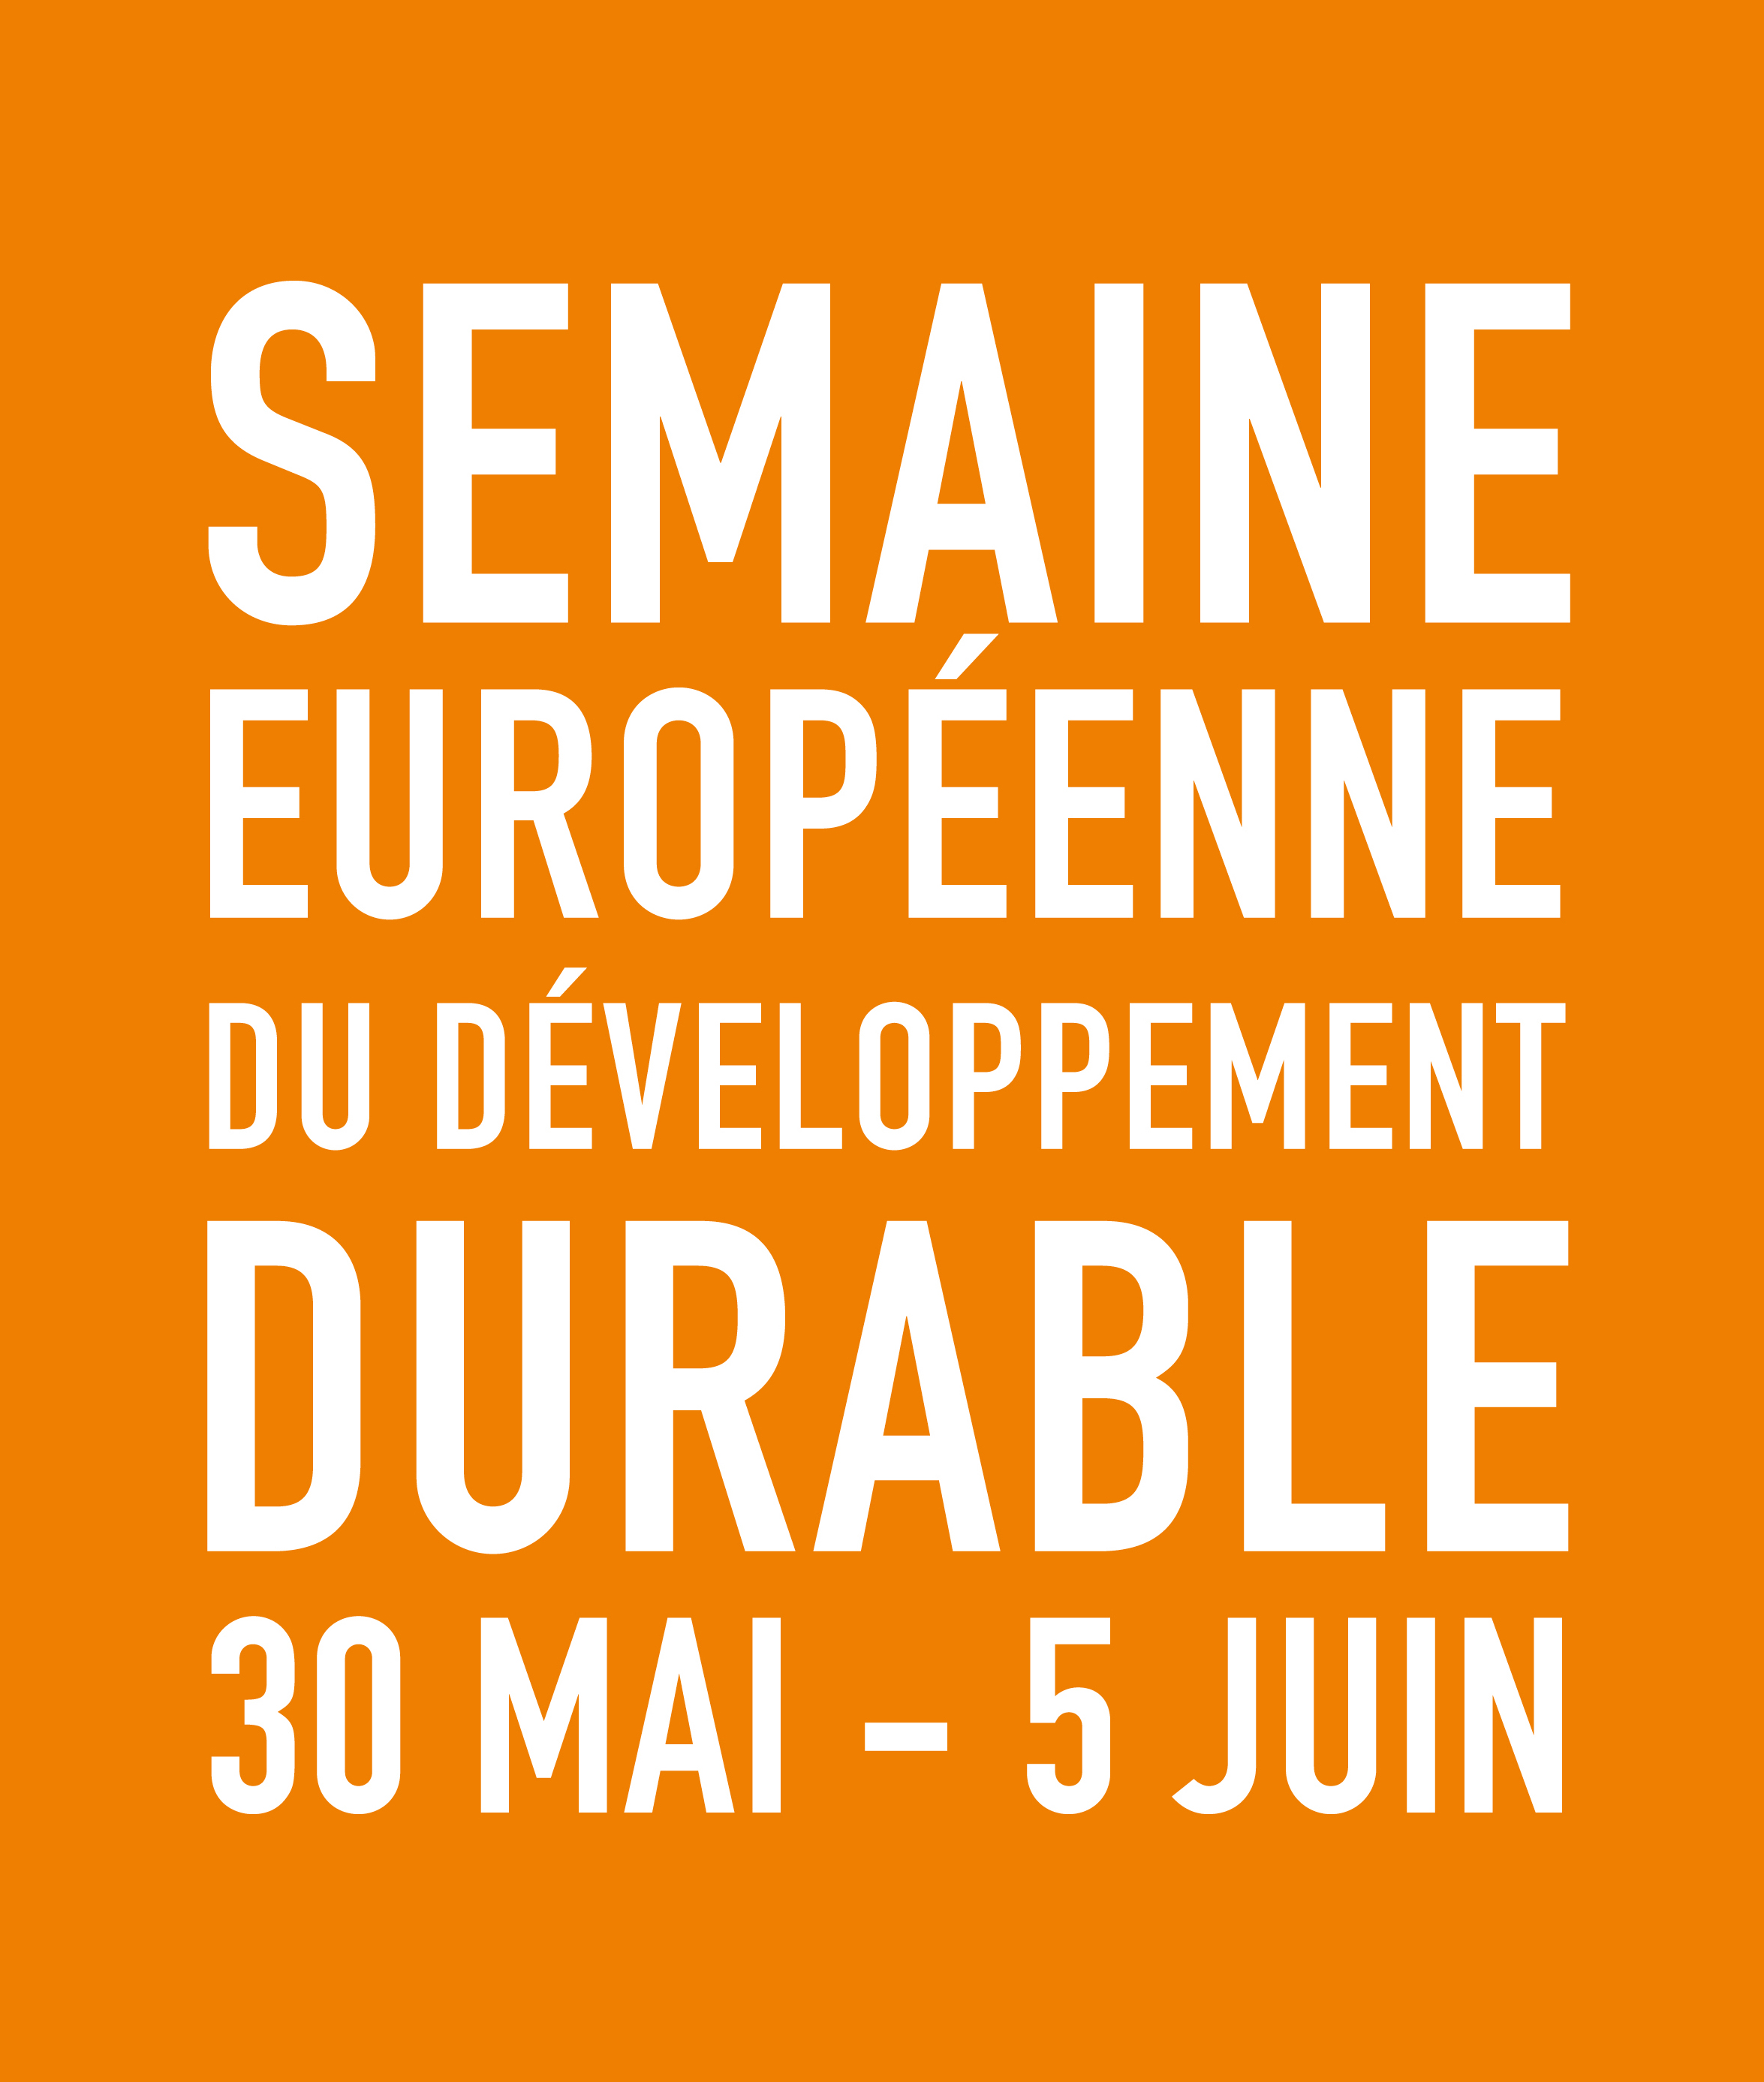 https://blogs.grandlyon.com/developpementdurable/files/2016/05/14162-logo-semaine-europeenne-DD-FR_orange.jpg